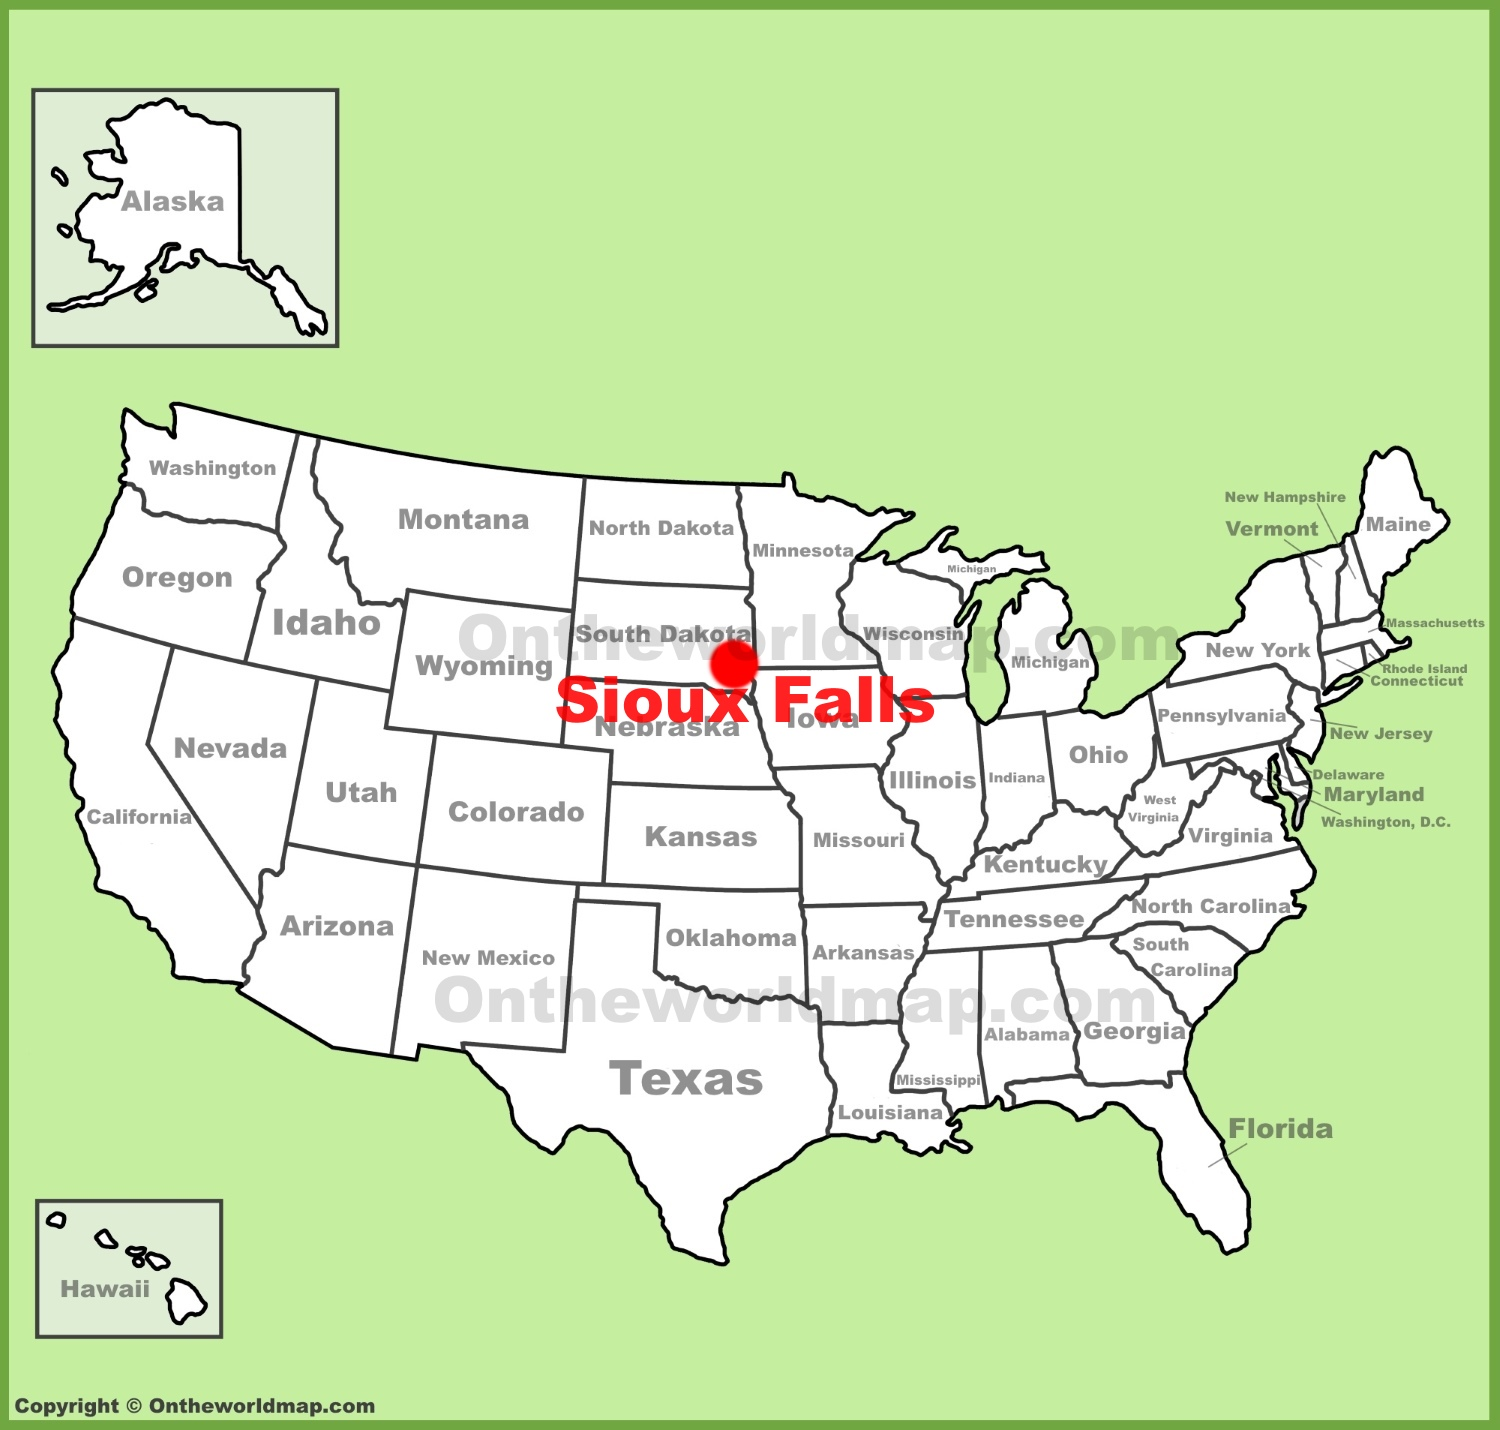 Sioux Falls Map Sioux Falls location on the U.S. Map